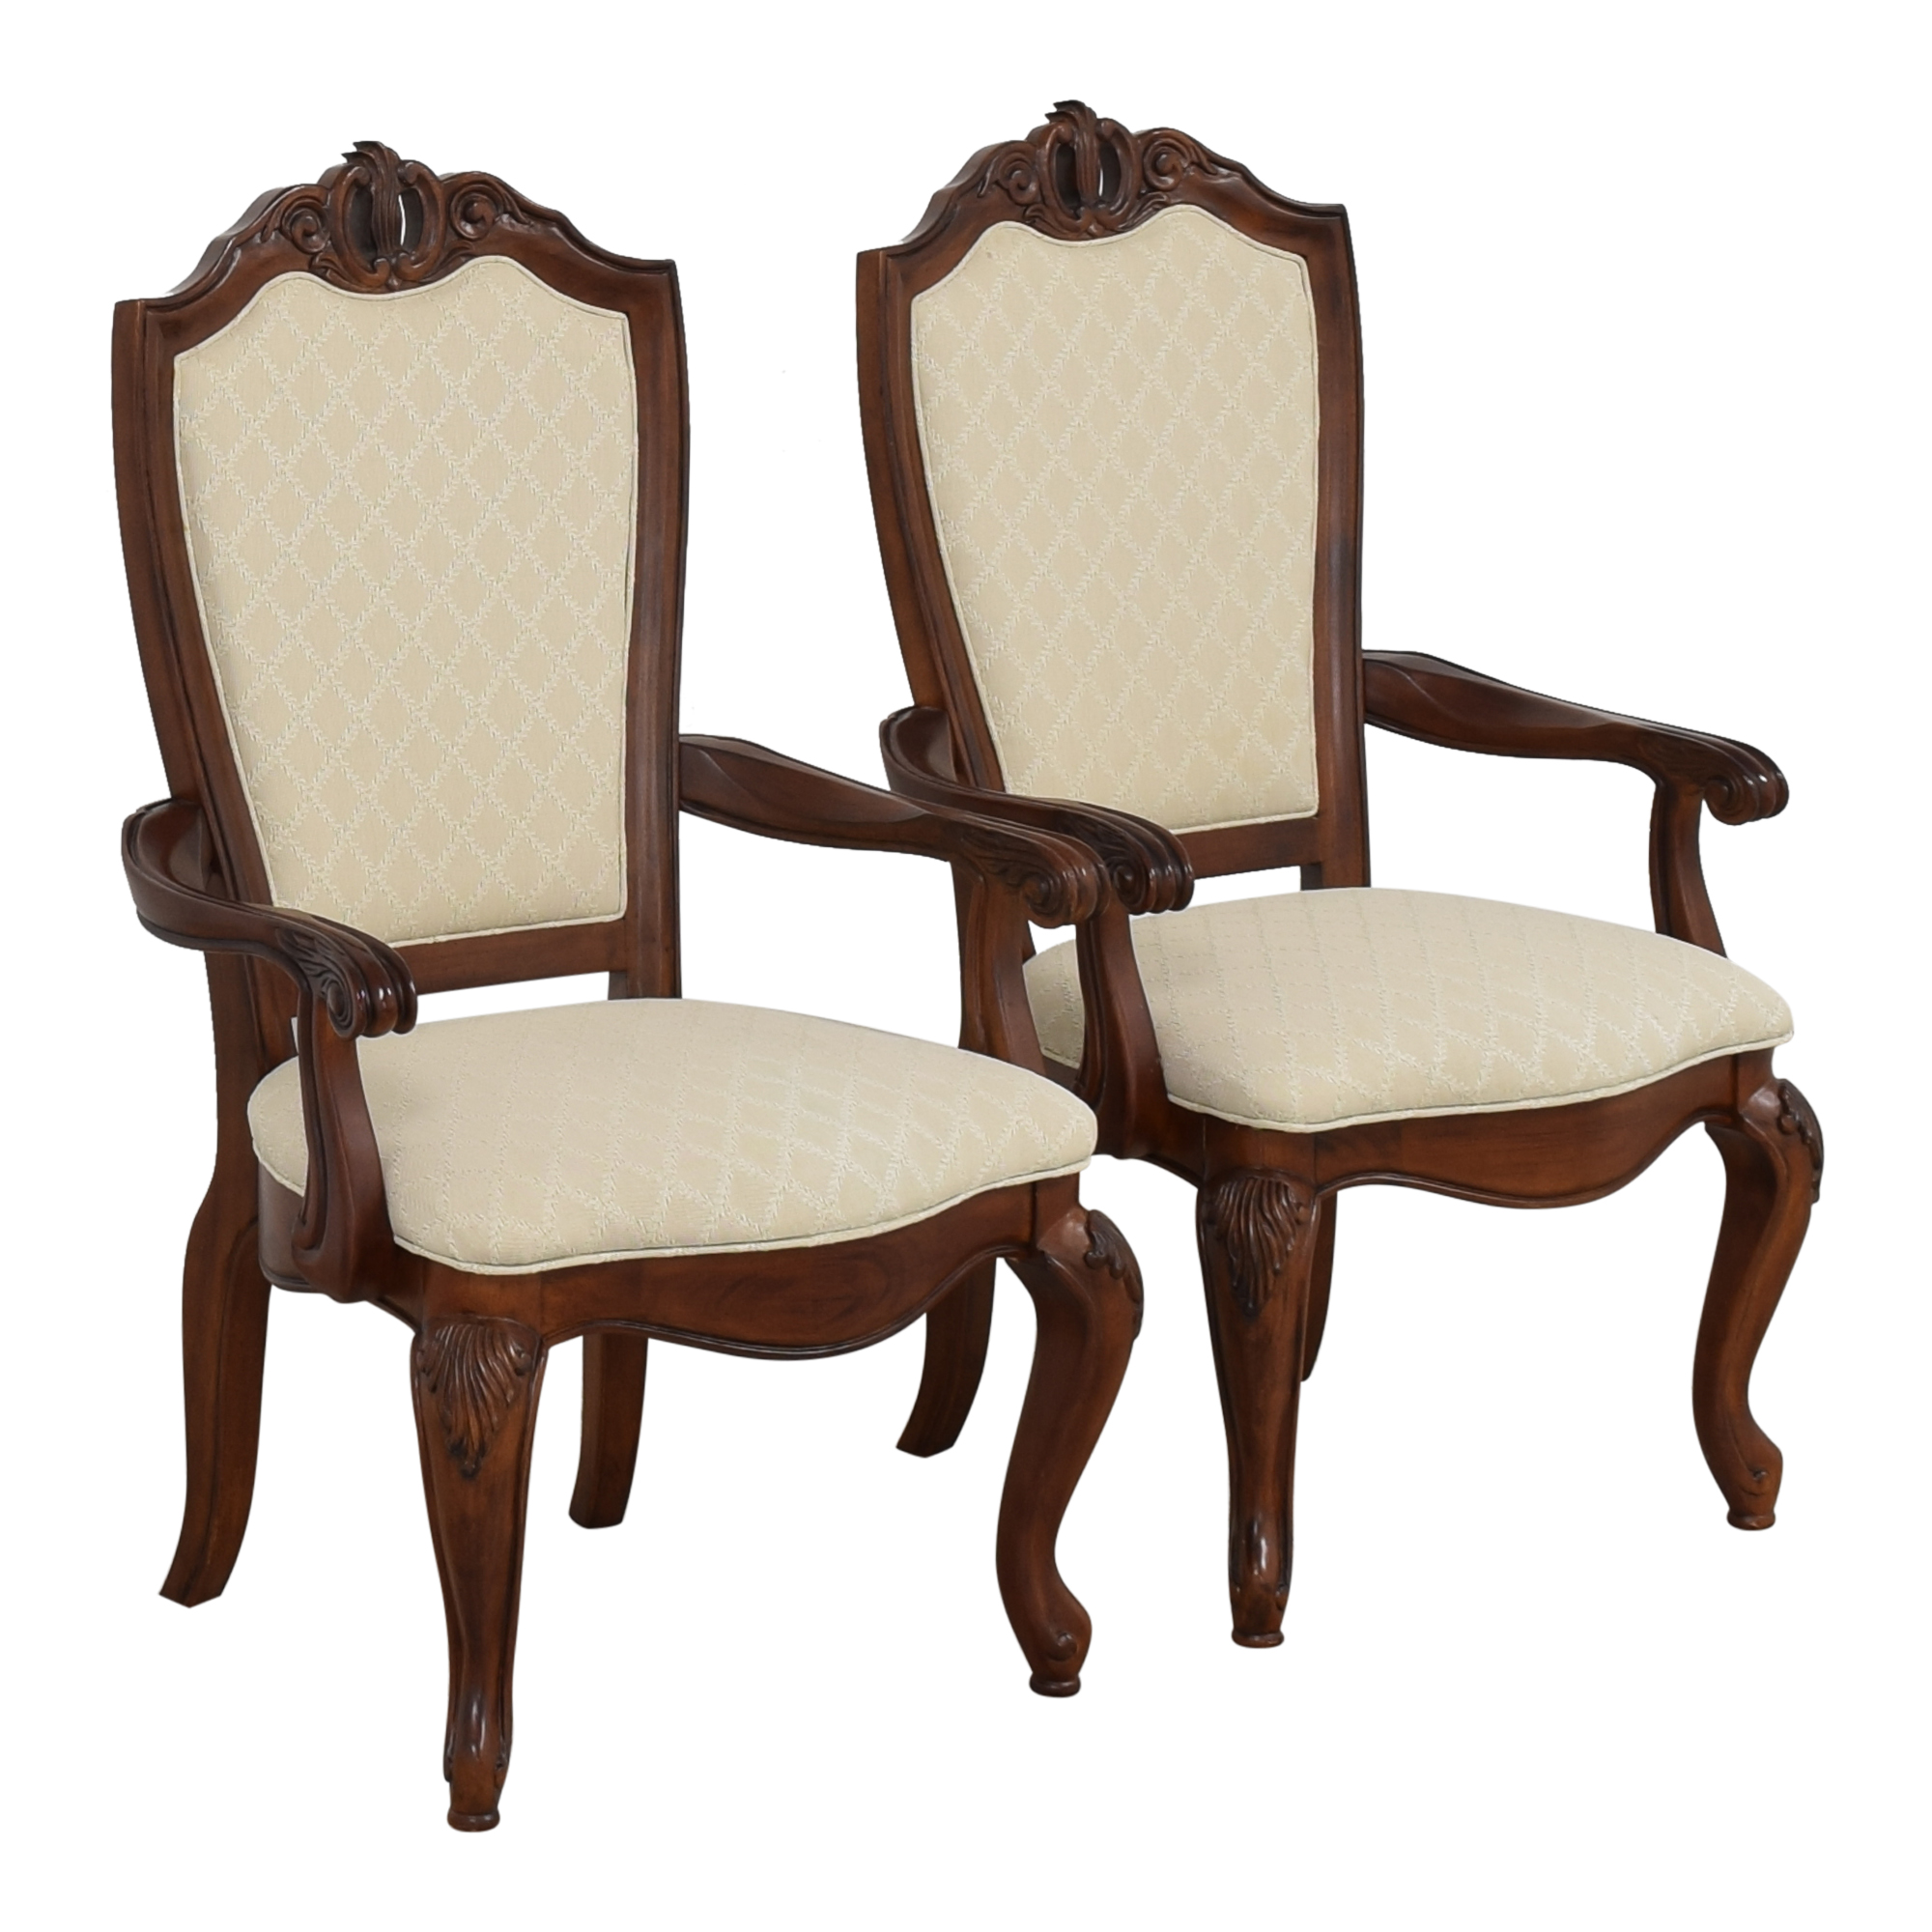 shop American Drew Upholstered Dining Arm Chairs American Drew